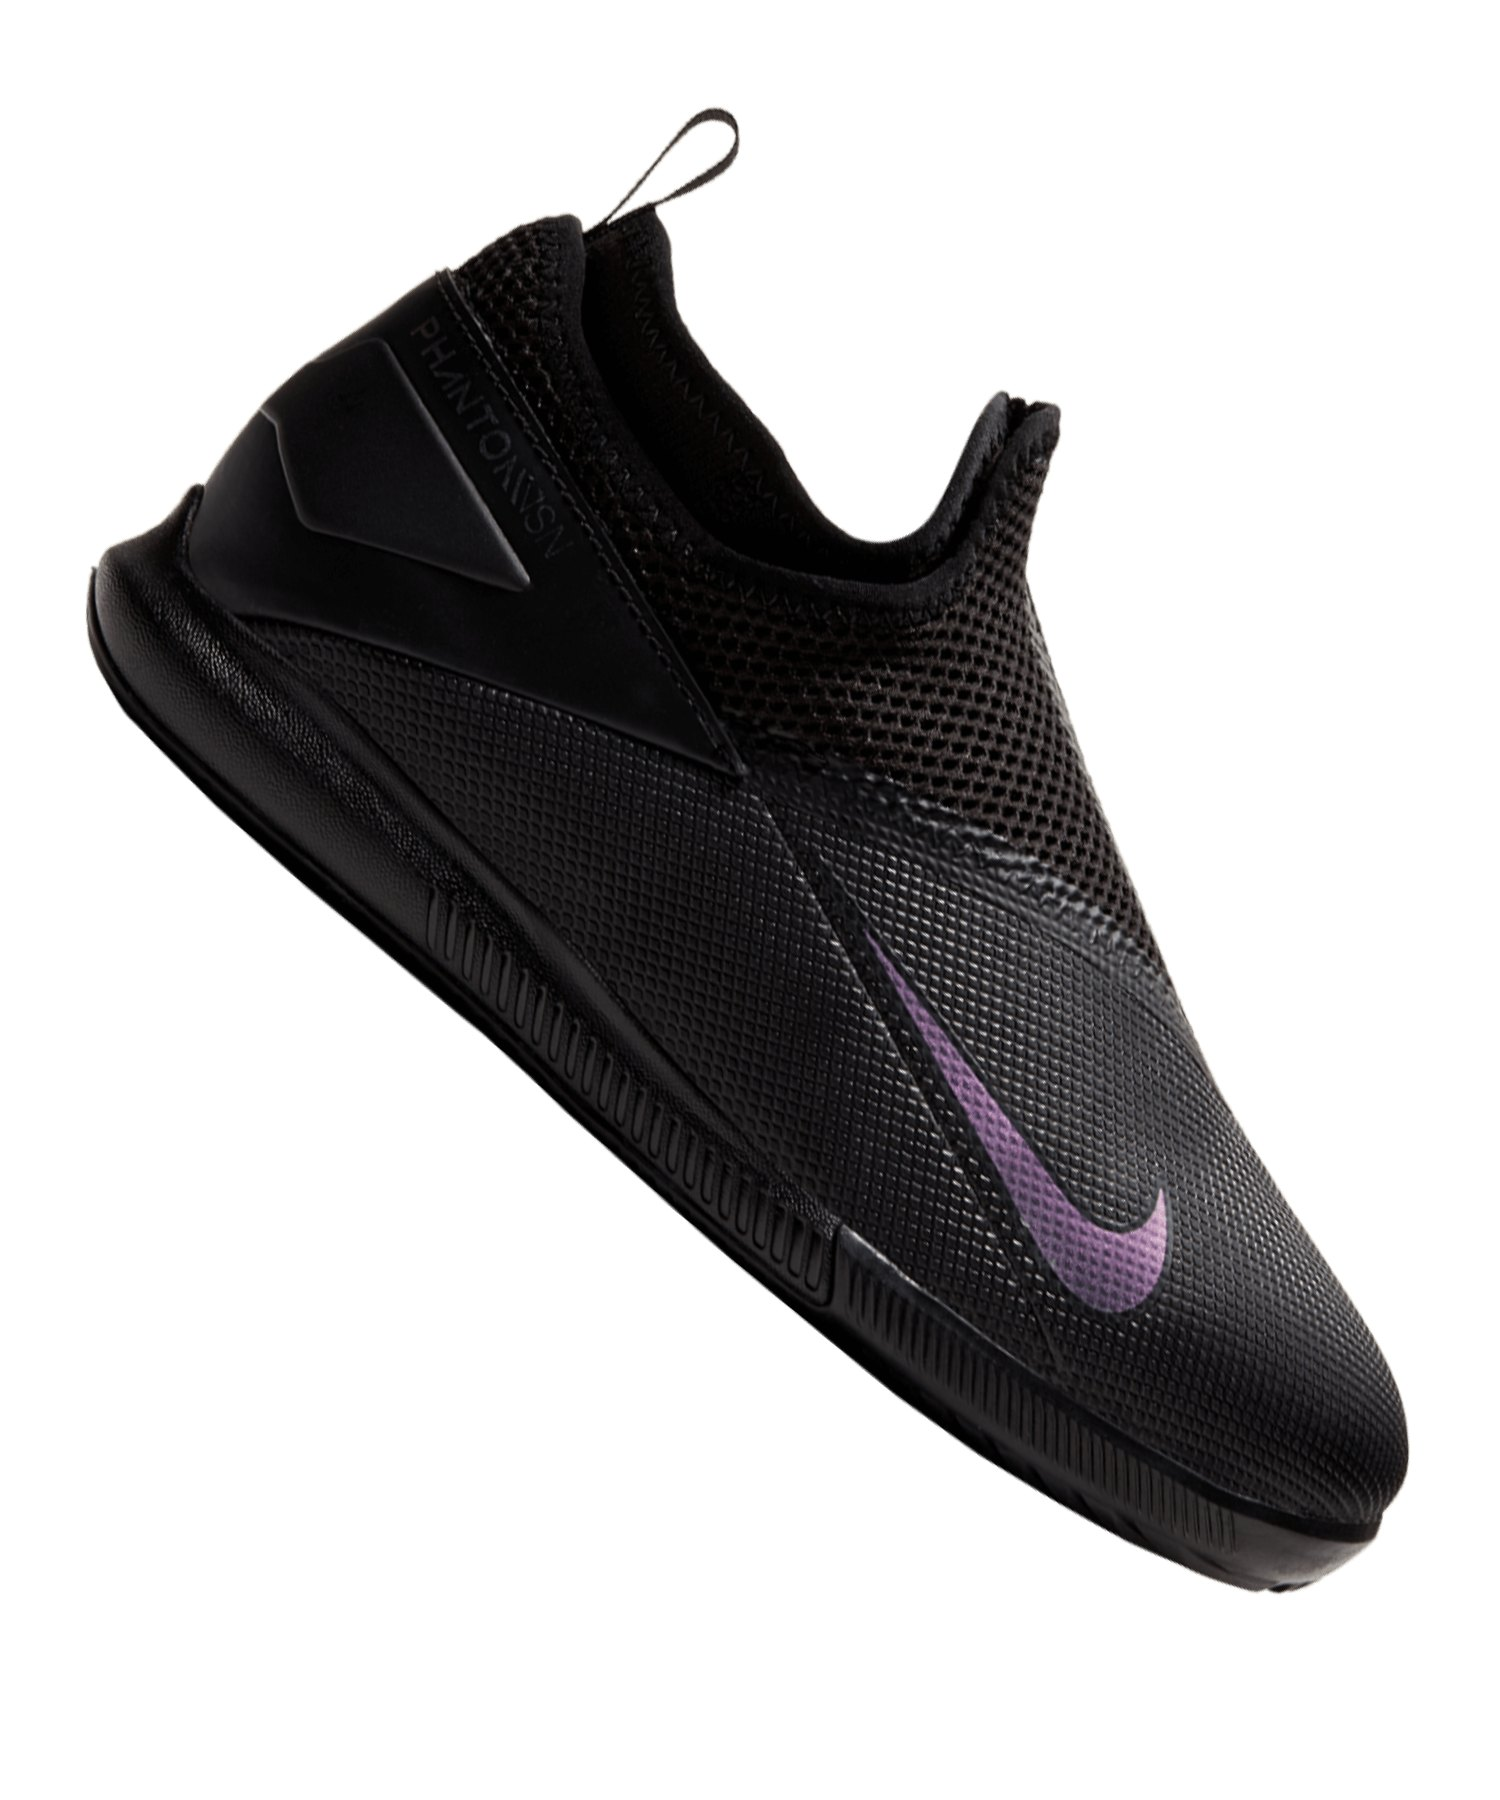 Nike Phantom Vision II Kinetic Black Academy DF IC Kids Schwarz F010 - schwarz